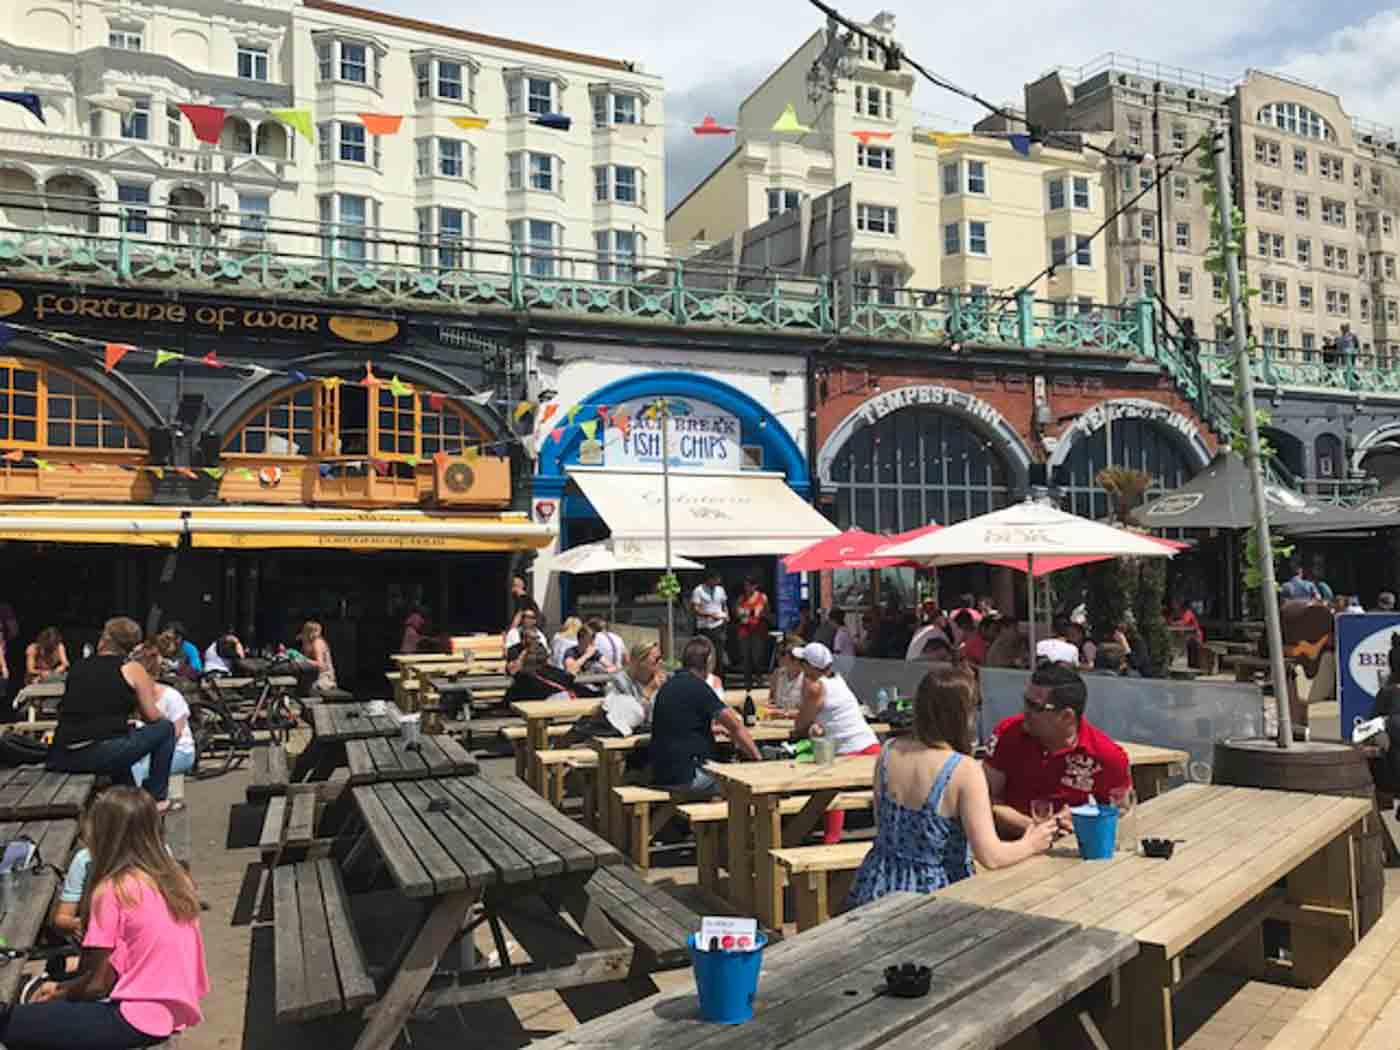 Pubs on the brighton seafront